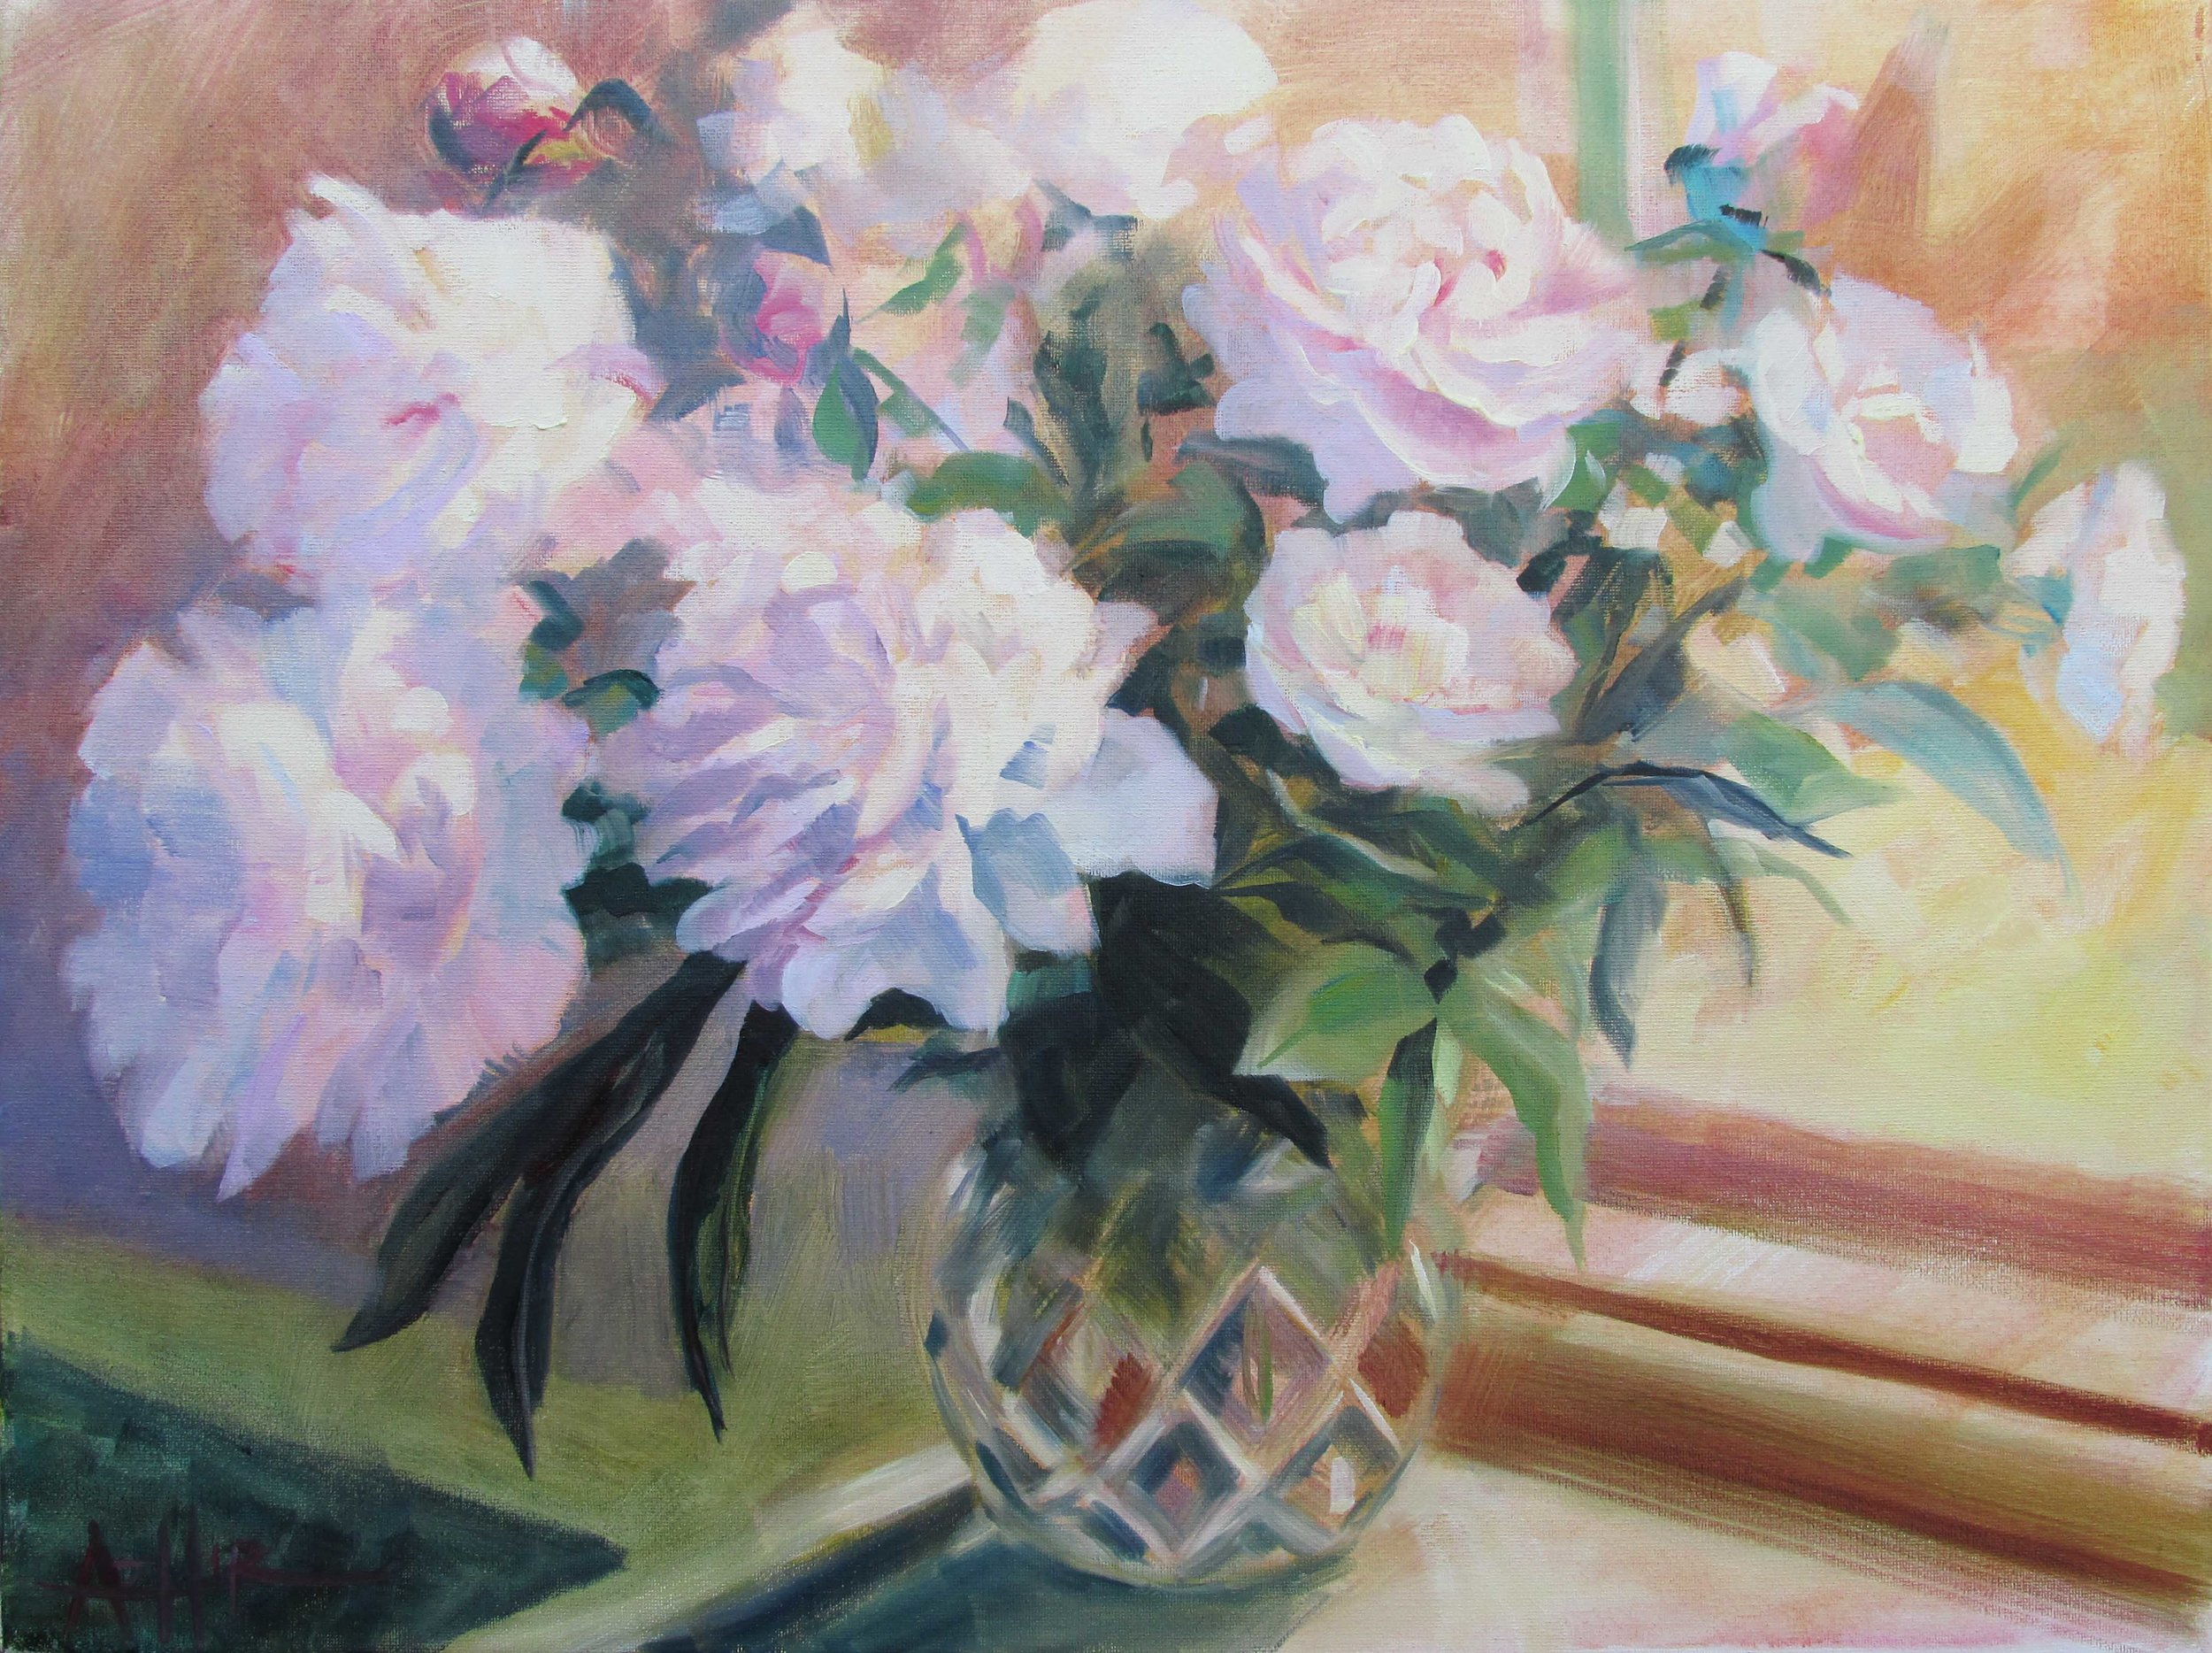 """SOLD, Peonies in a Cut Glass Vase, Copyright 2015 Hirschten, Oil on Canvas, 16"""" x 20"""""""